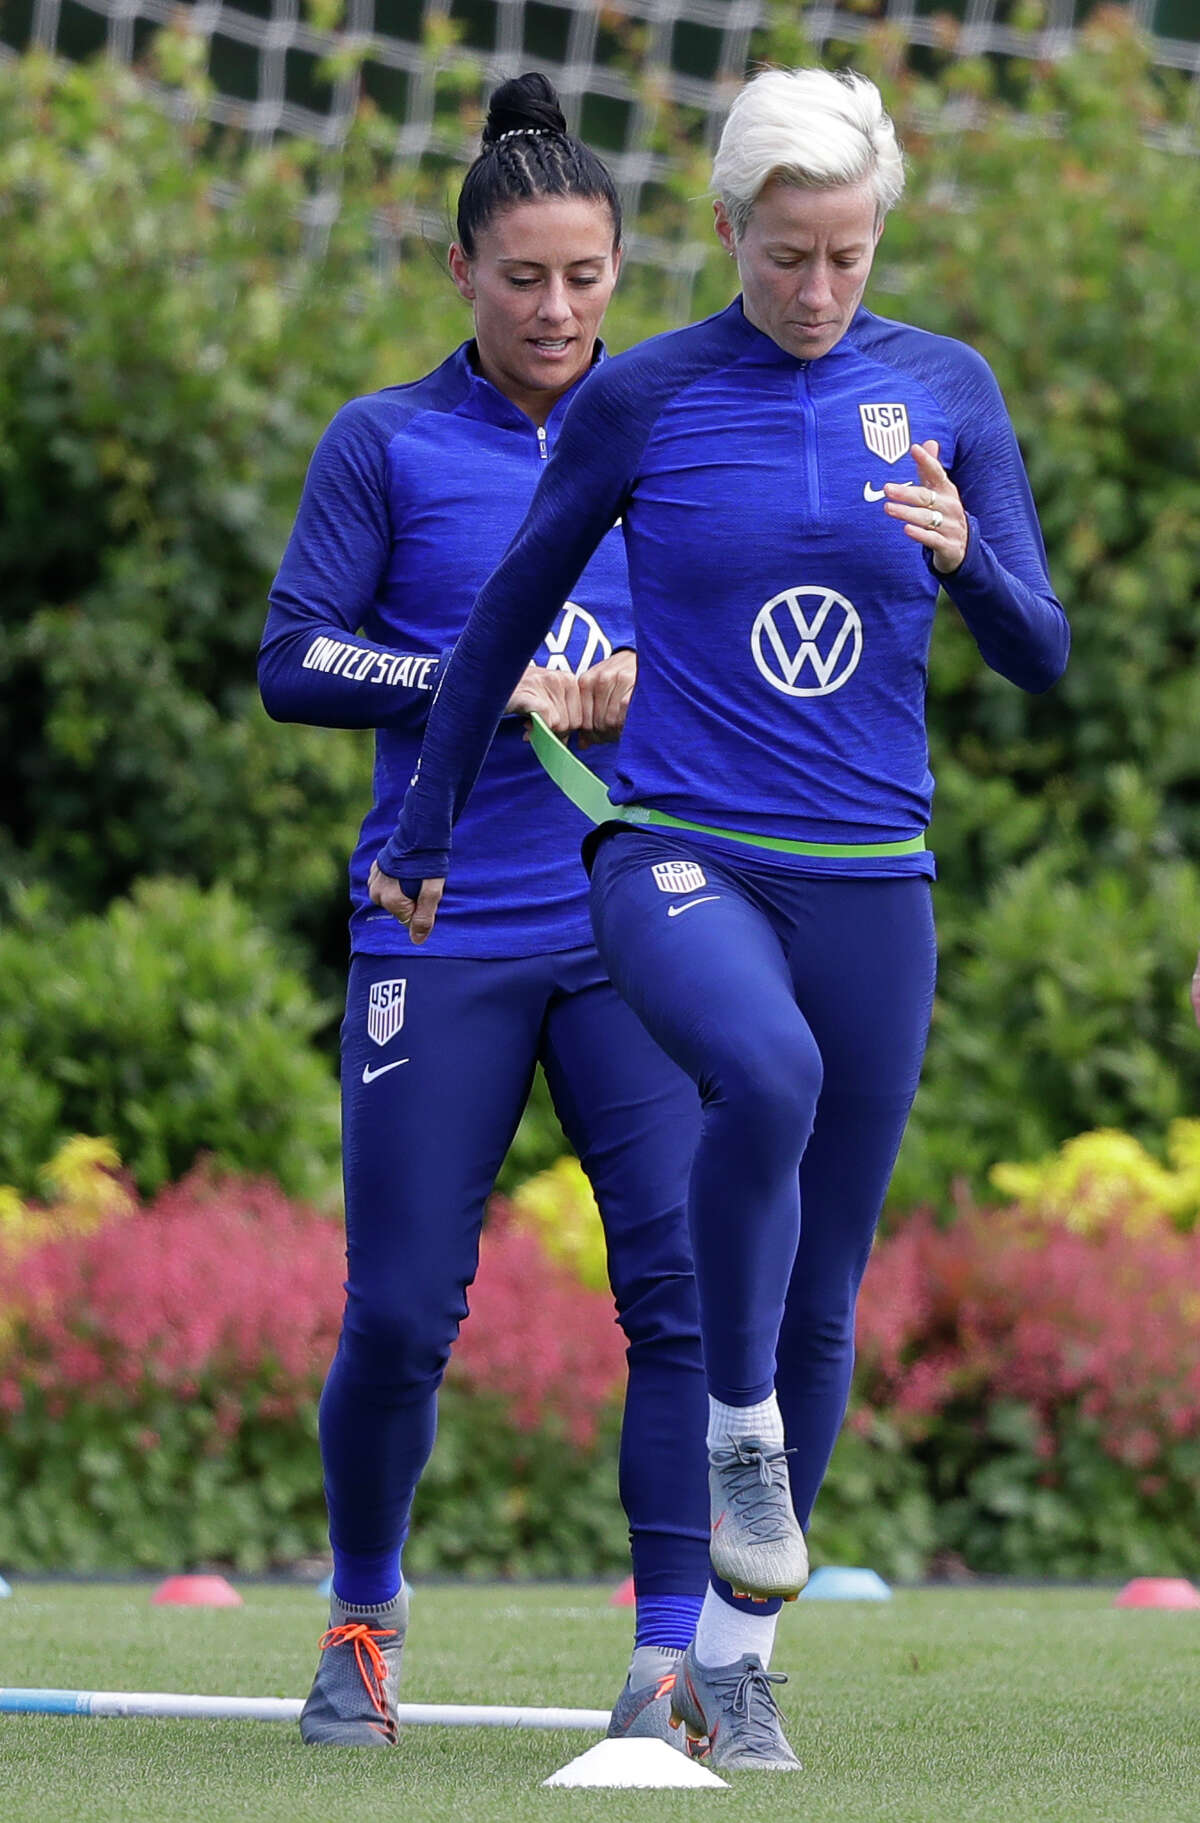 """Teammates have Rapinoe's back Ali Krieger (pictured above), who also plays on the United States team, responded to Donald Trump's Twitter thread: """"I know women you cannot control or grope anger you, but I stand by (Megan) & will sit this one out as well. I don't support this administration nor their fight against LGBTQ+ citizens, immigrants & our most vulnerable."""""""